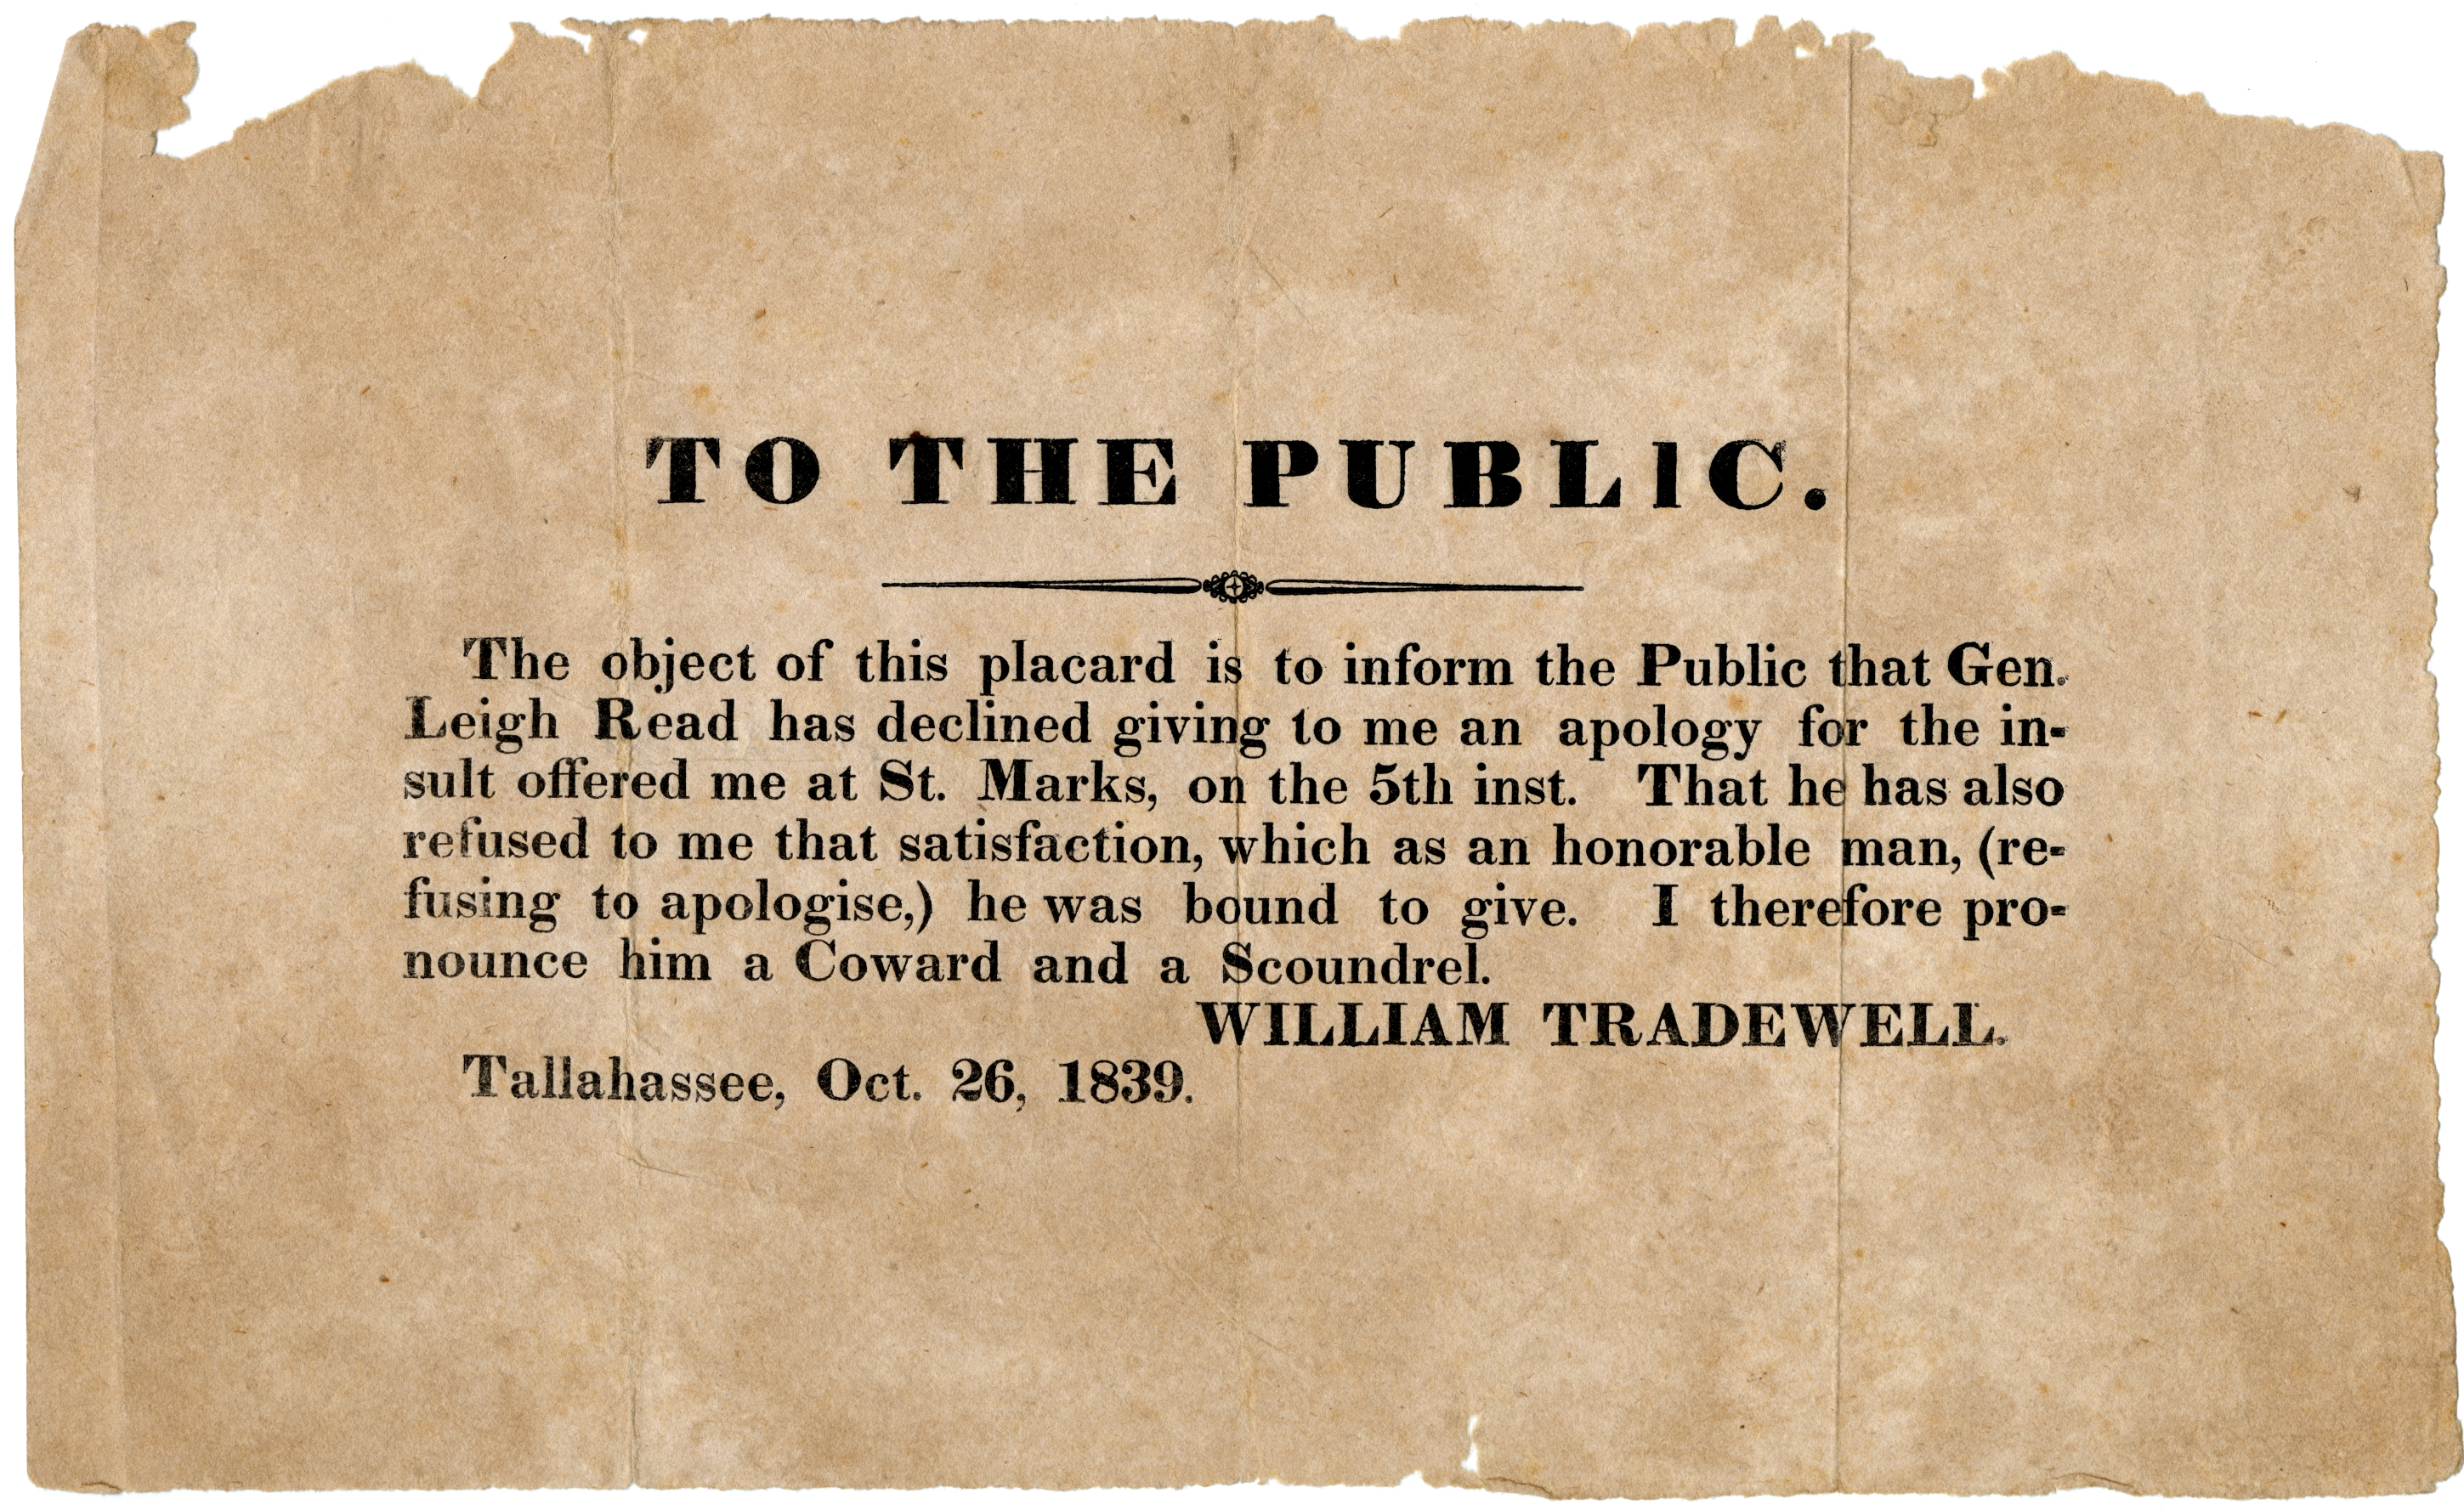 To the public ... William Tradewell. Tallahassee, Oct. 26, 1839.